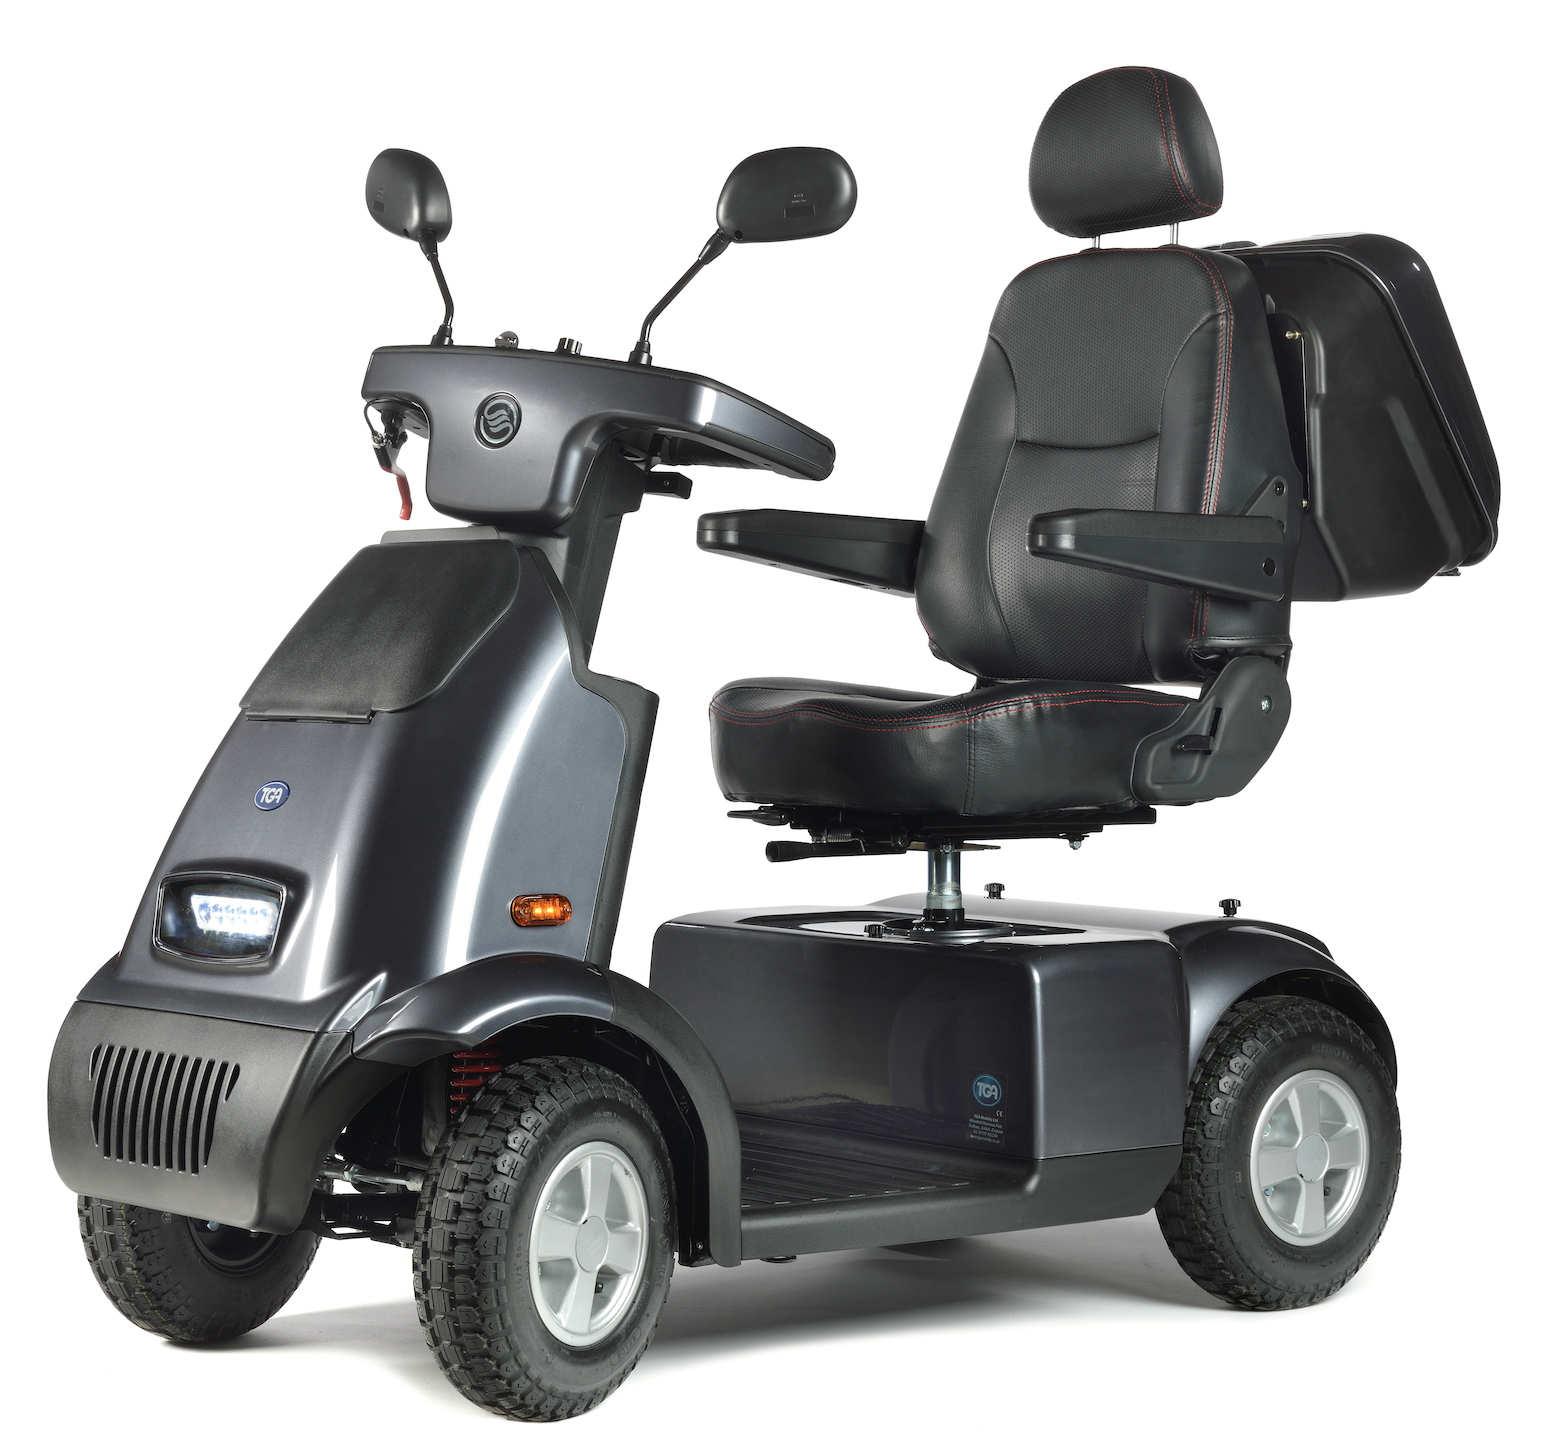 2020 TGA breeze midi 4 mobility scooter front